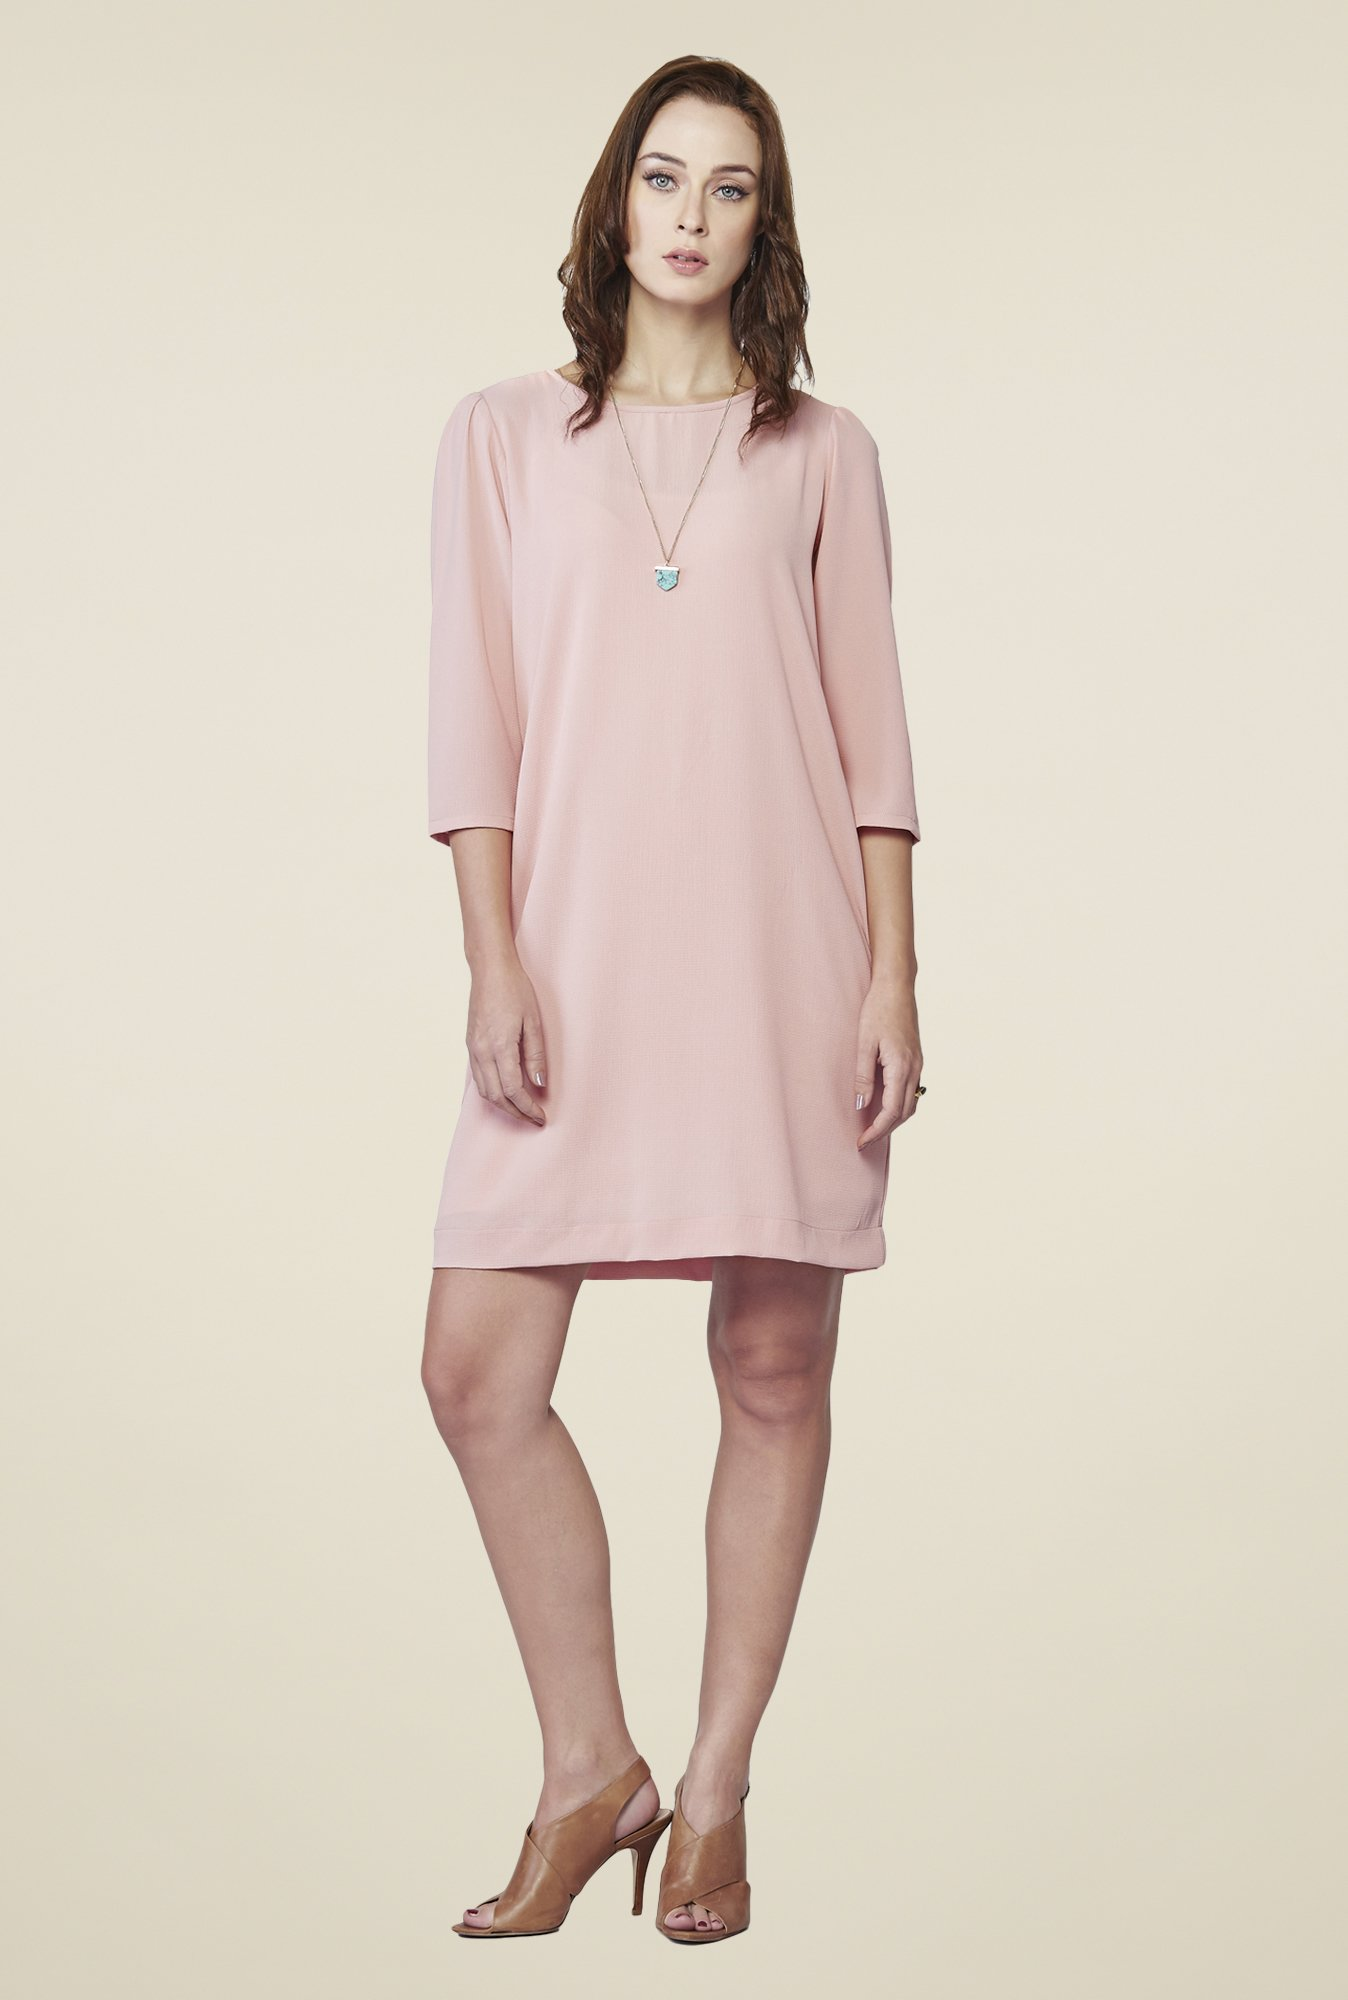 AND Pink Blush Shift Dress